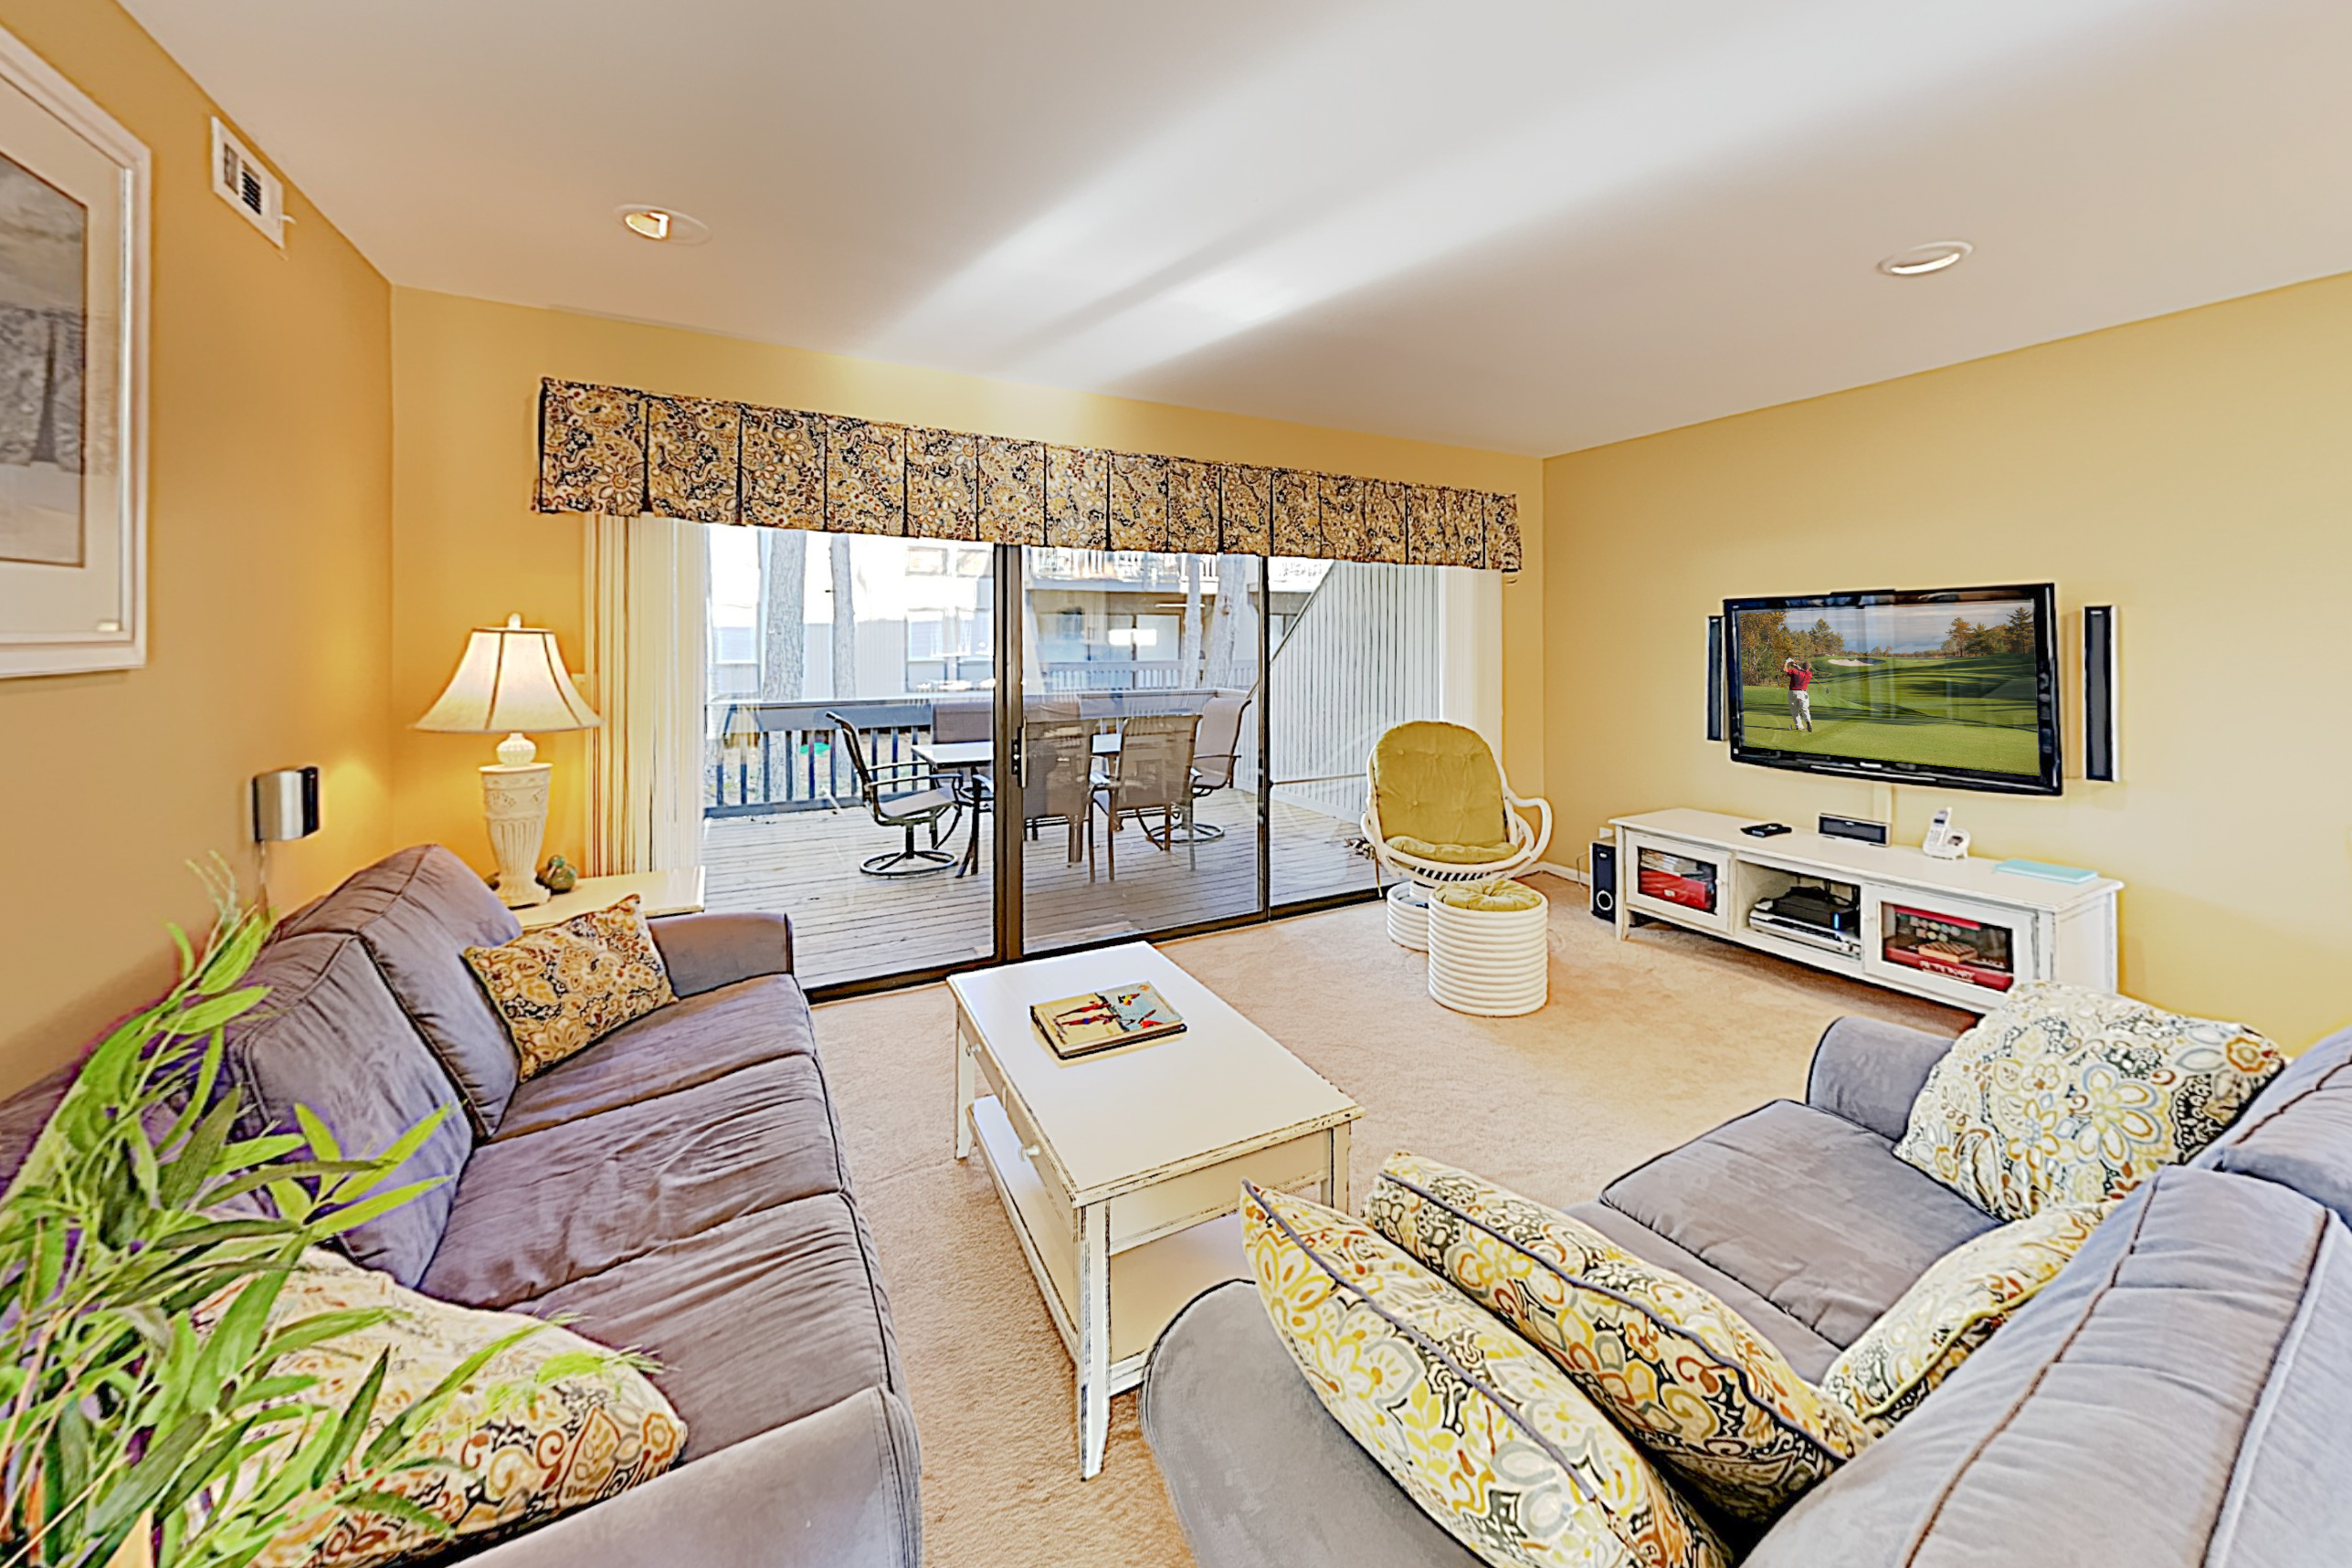 Bethany Beach DE Vacation Rental Welcome to Bethany